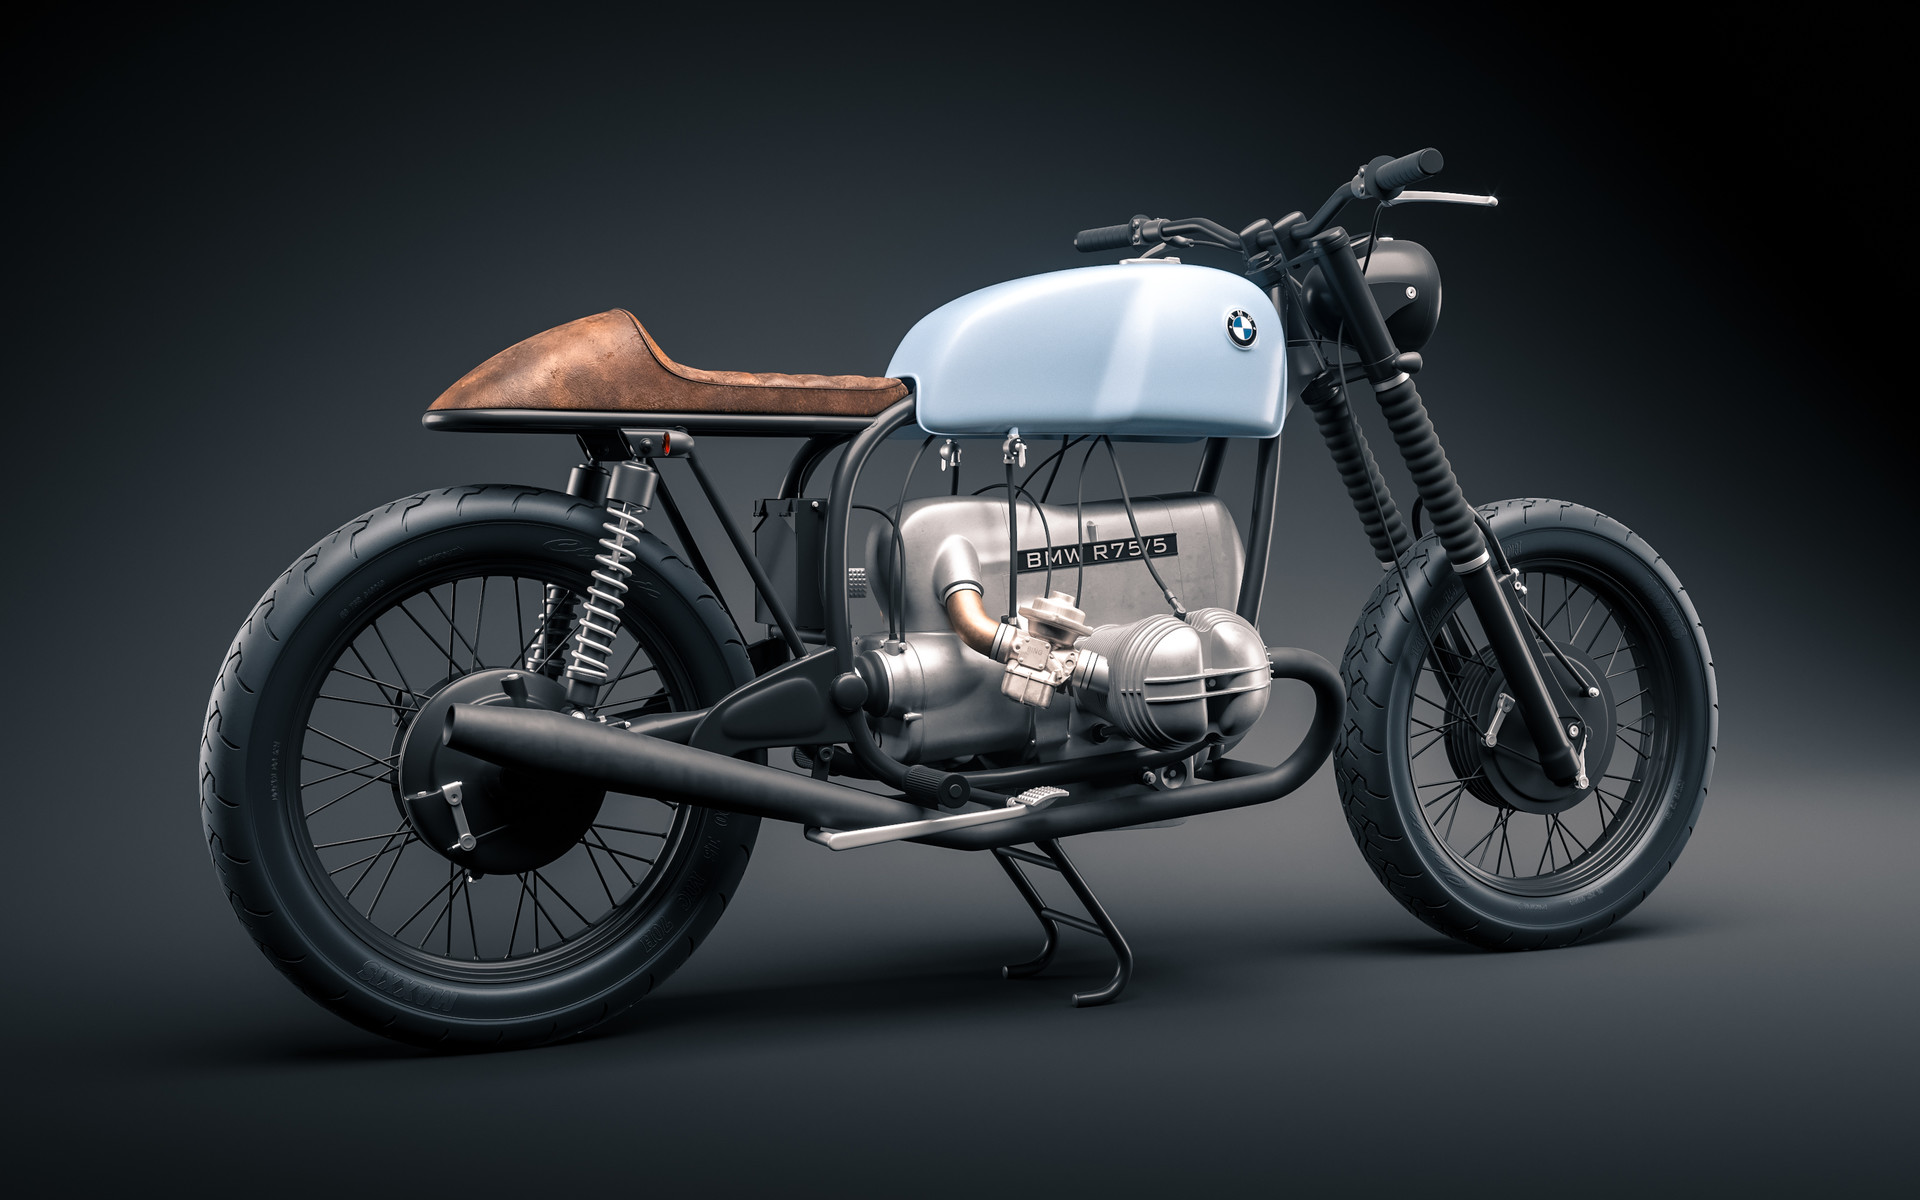 vladimir tikhonov bmw r75 5 cafe racer. Black Bedroom Furniture Sets. Home Design Ideas